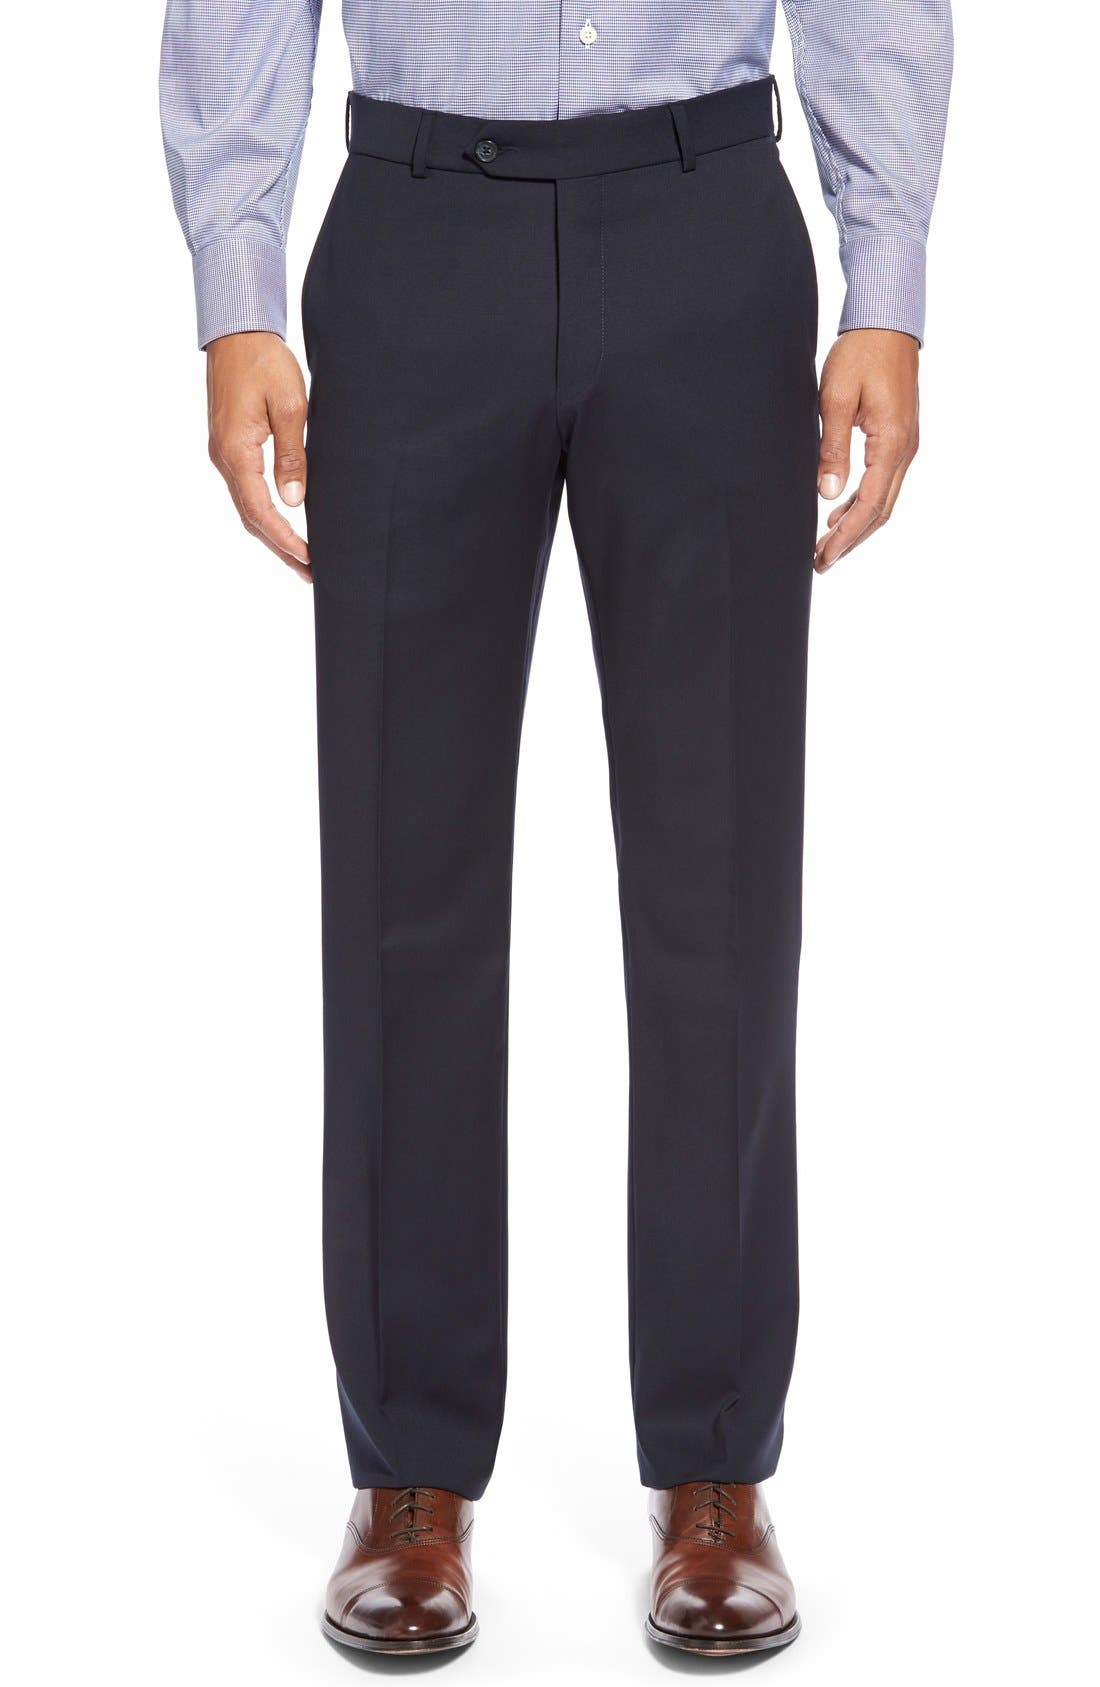 BALLIN, Flat Front Solid Wool Trousers, Main thumbnail 1, color, NAVY